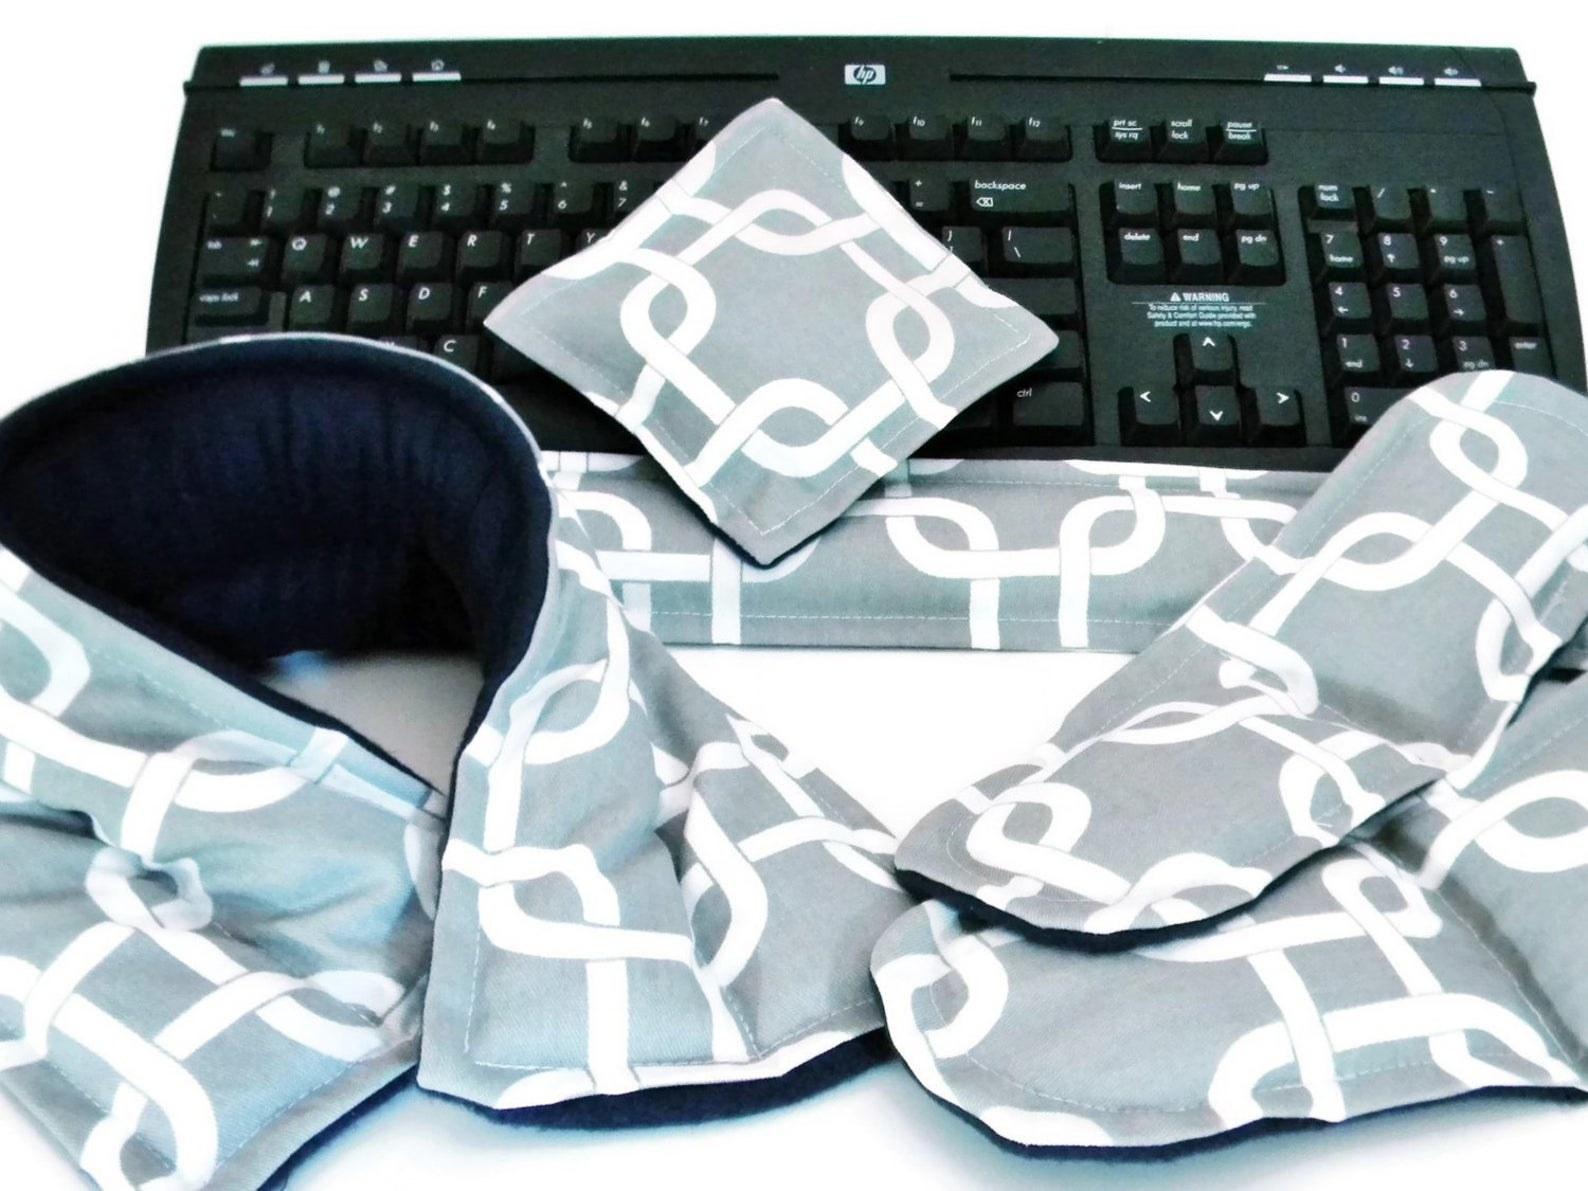 The heat pads in gray with white chain designs